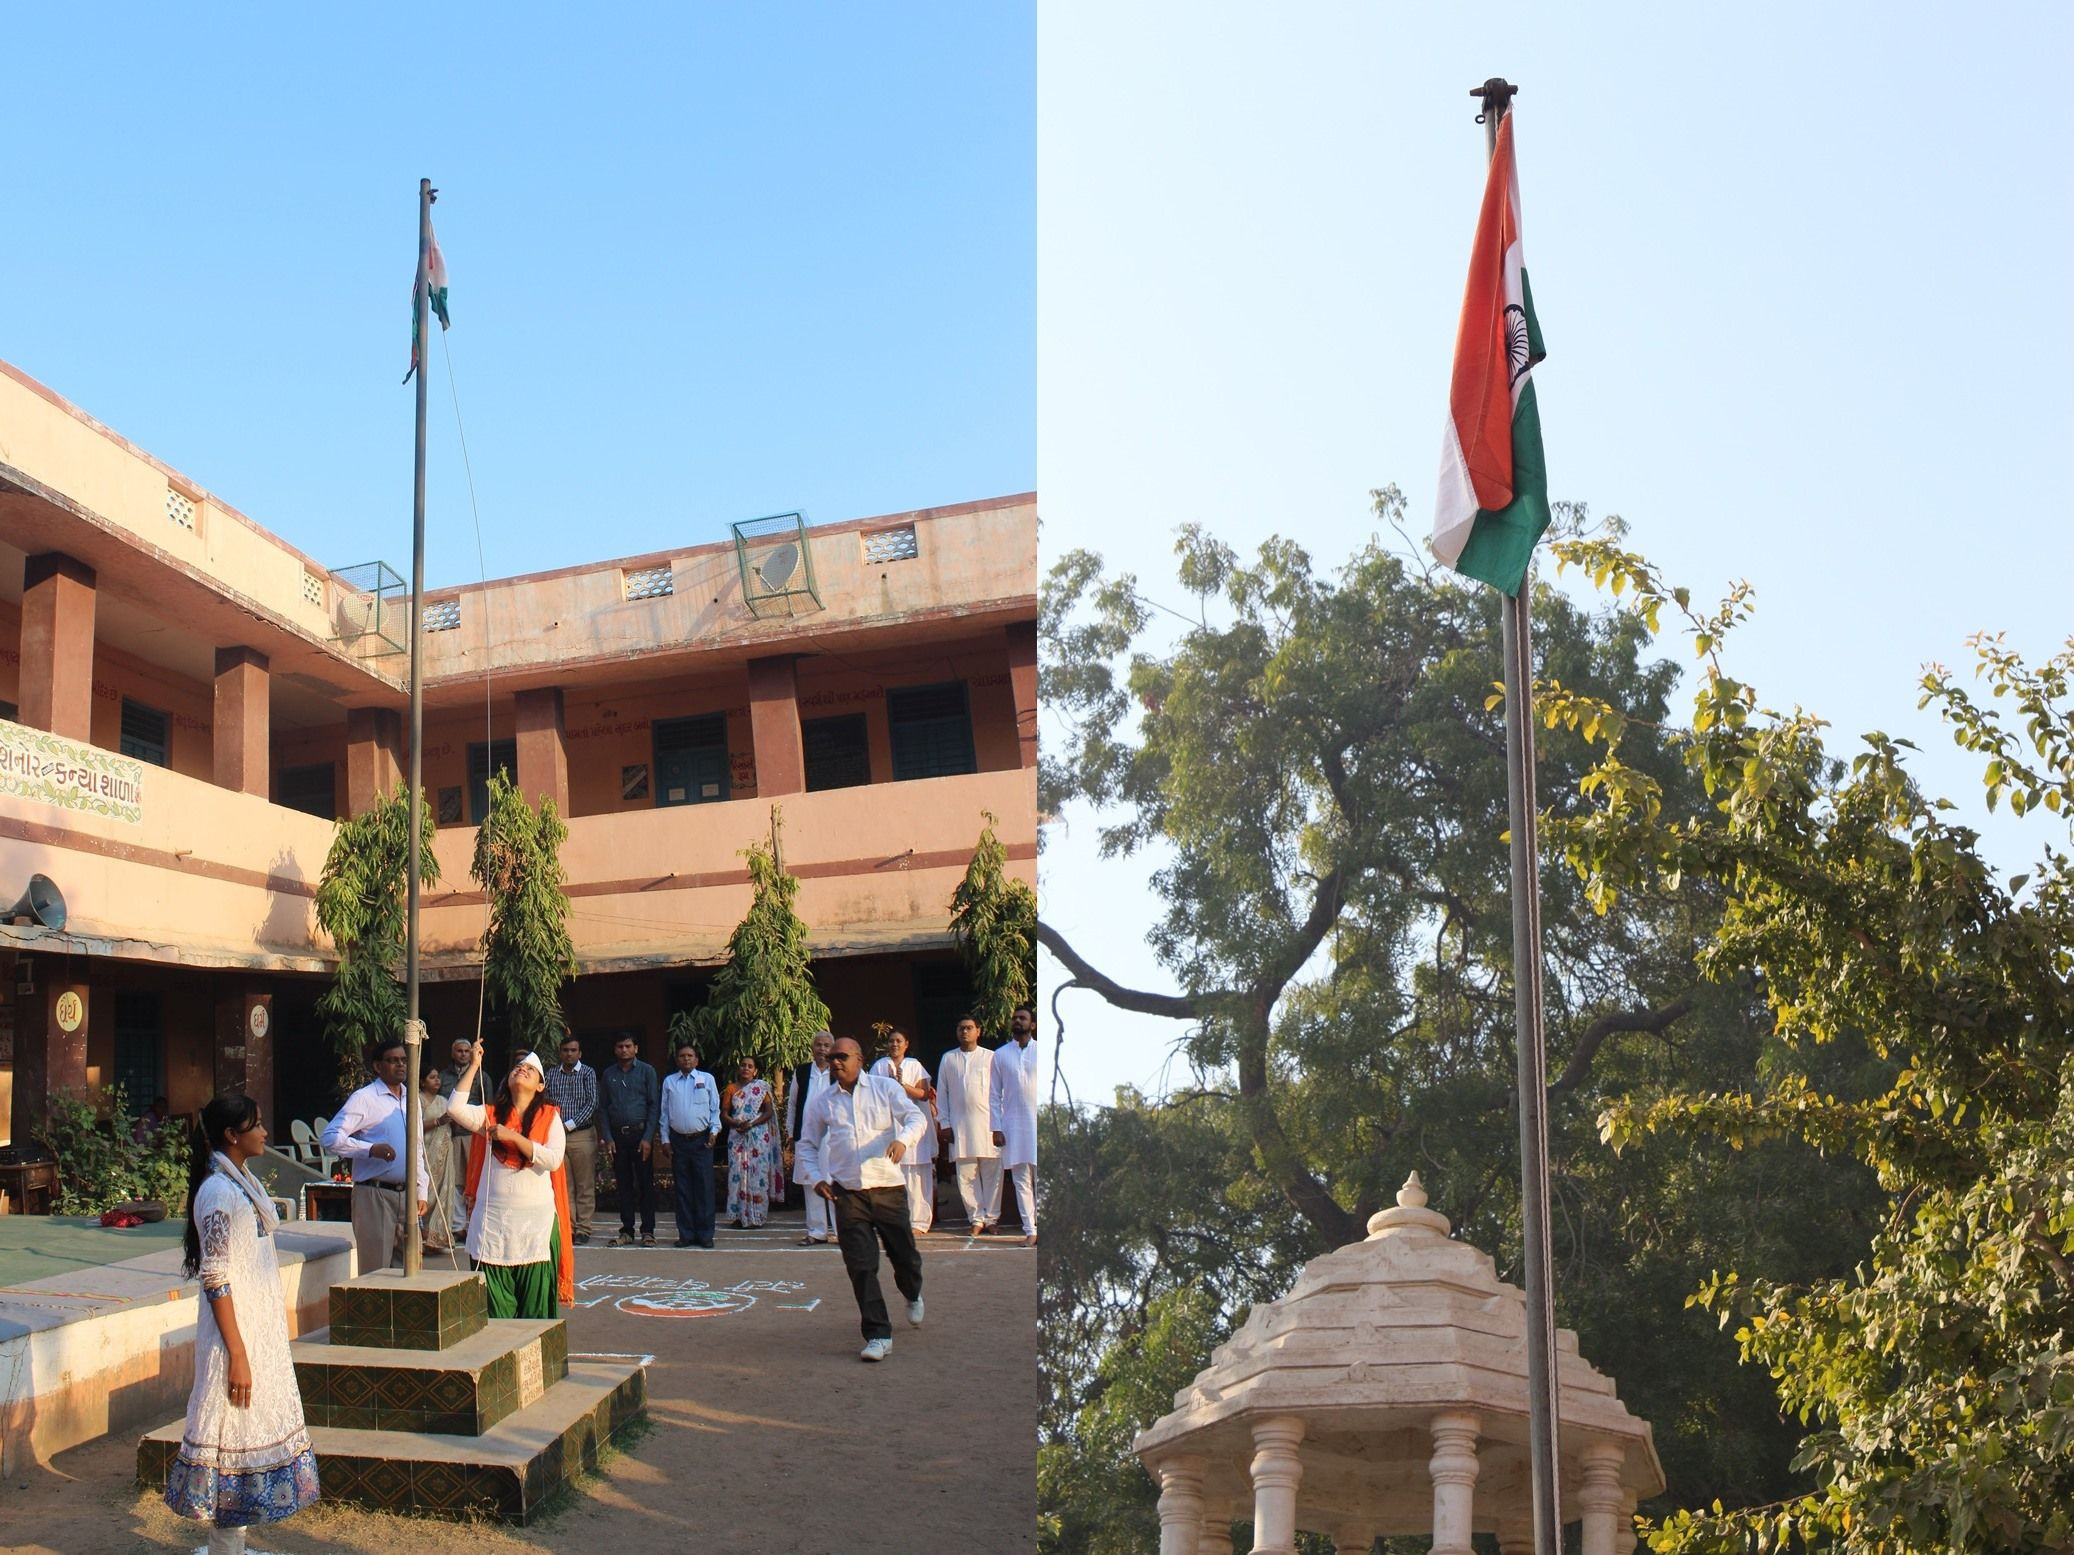 Feelings when I hoisted the Indian flag in my school - Crazy Wanderer